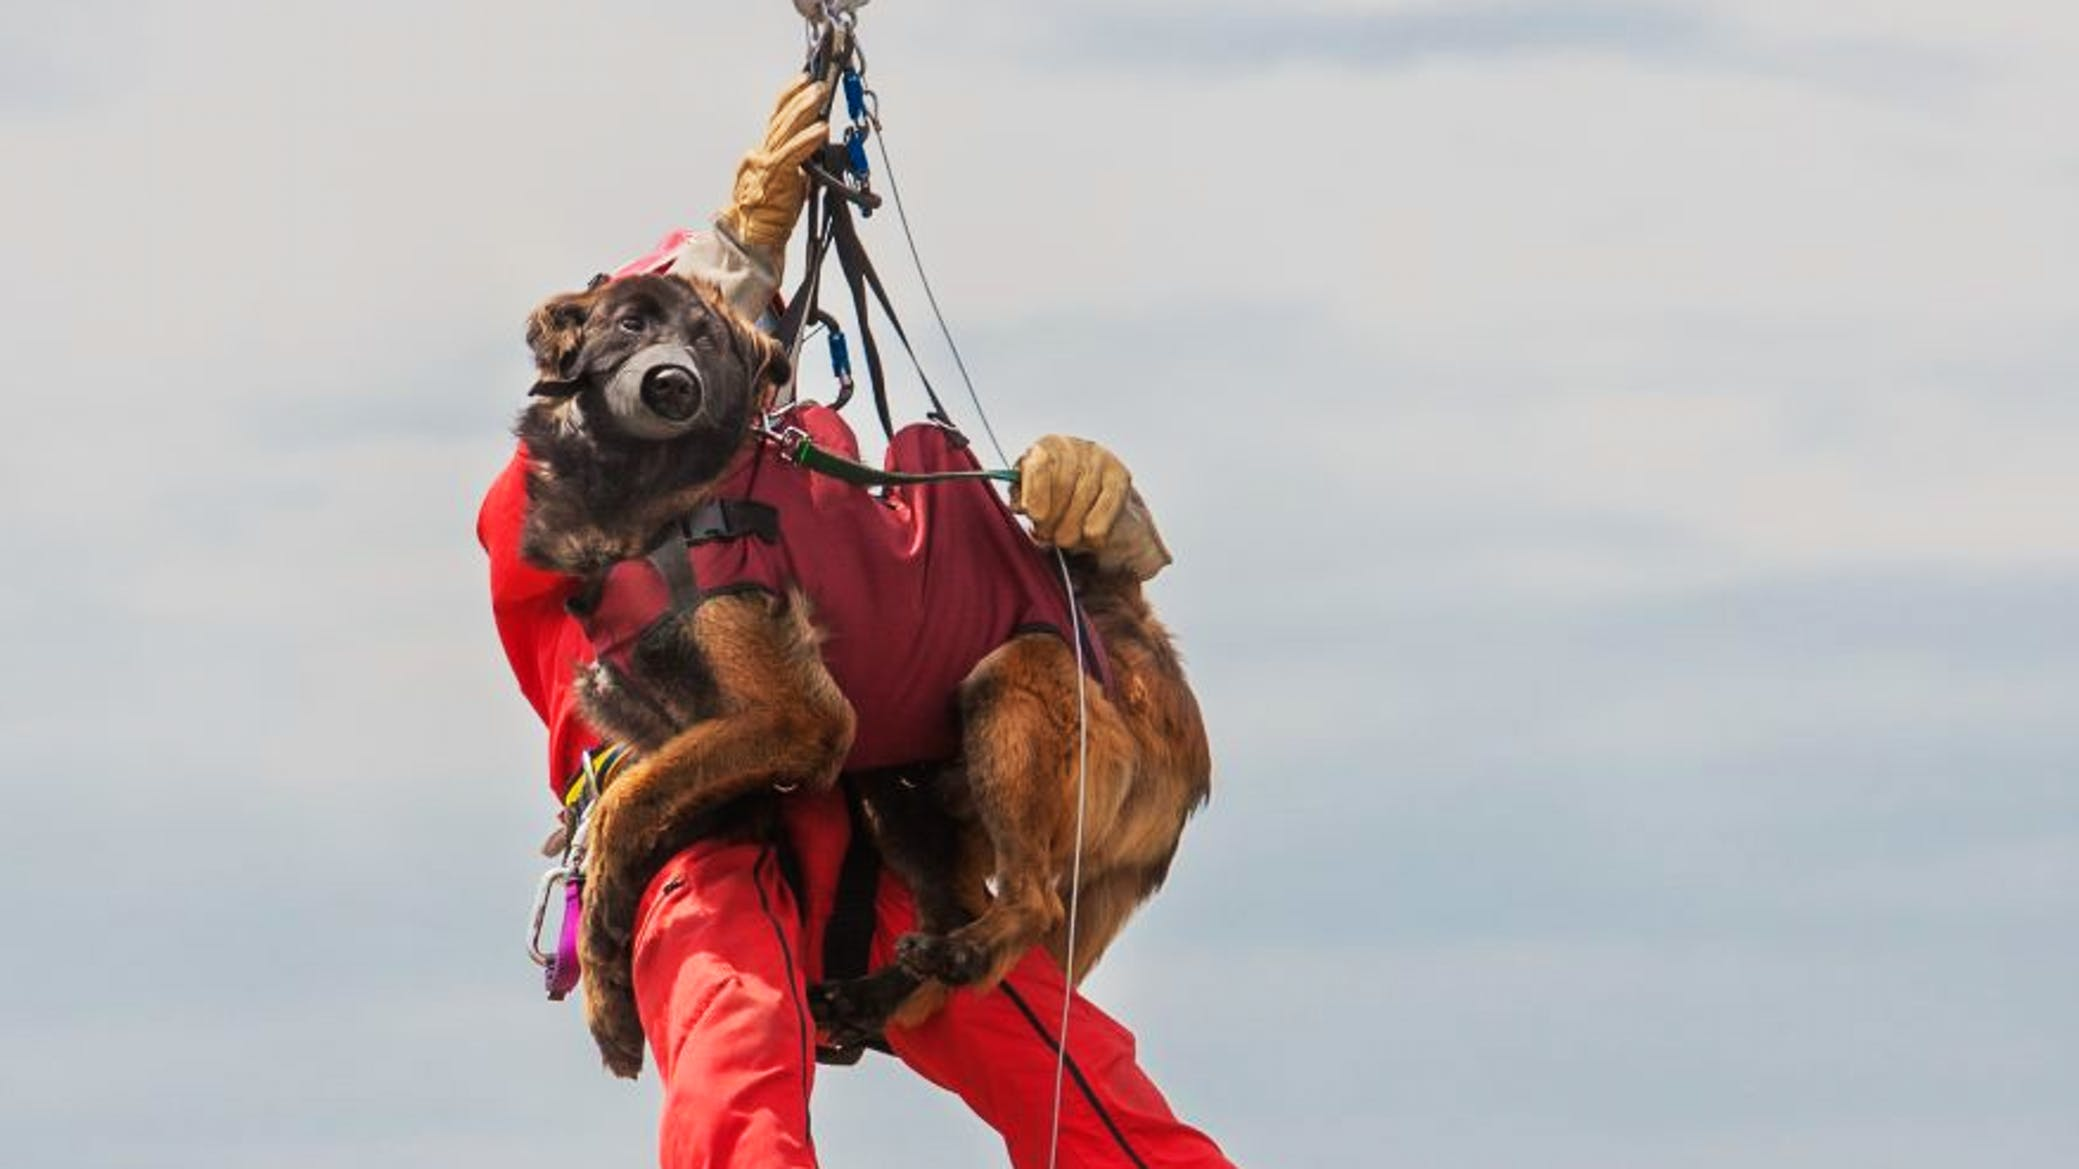 Rescue dog coming down from an helicopter